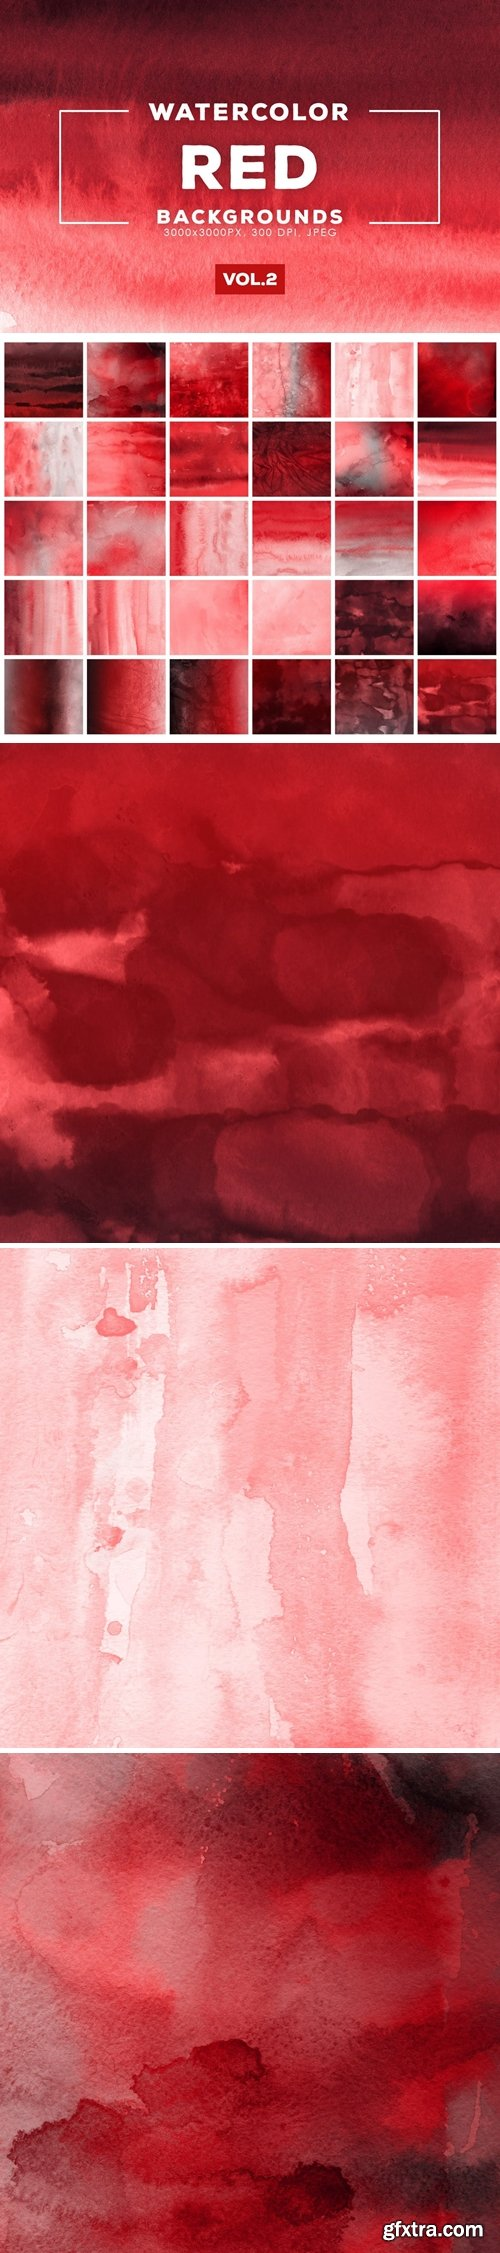 Watercolor Red Backgrounds Vol.2